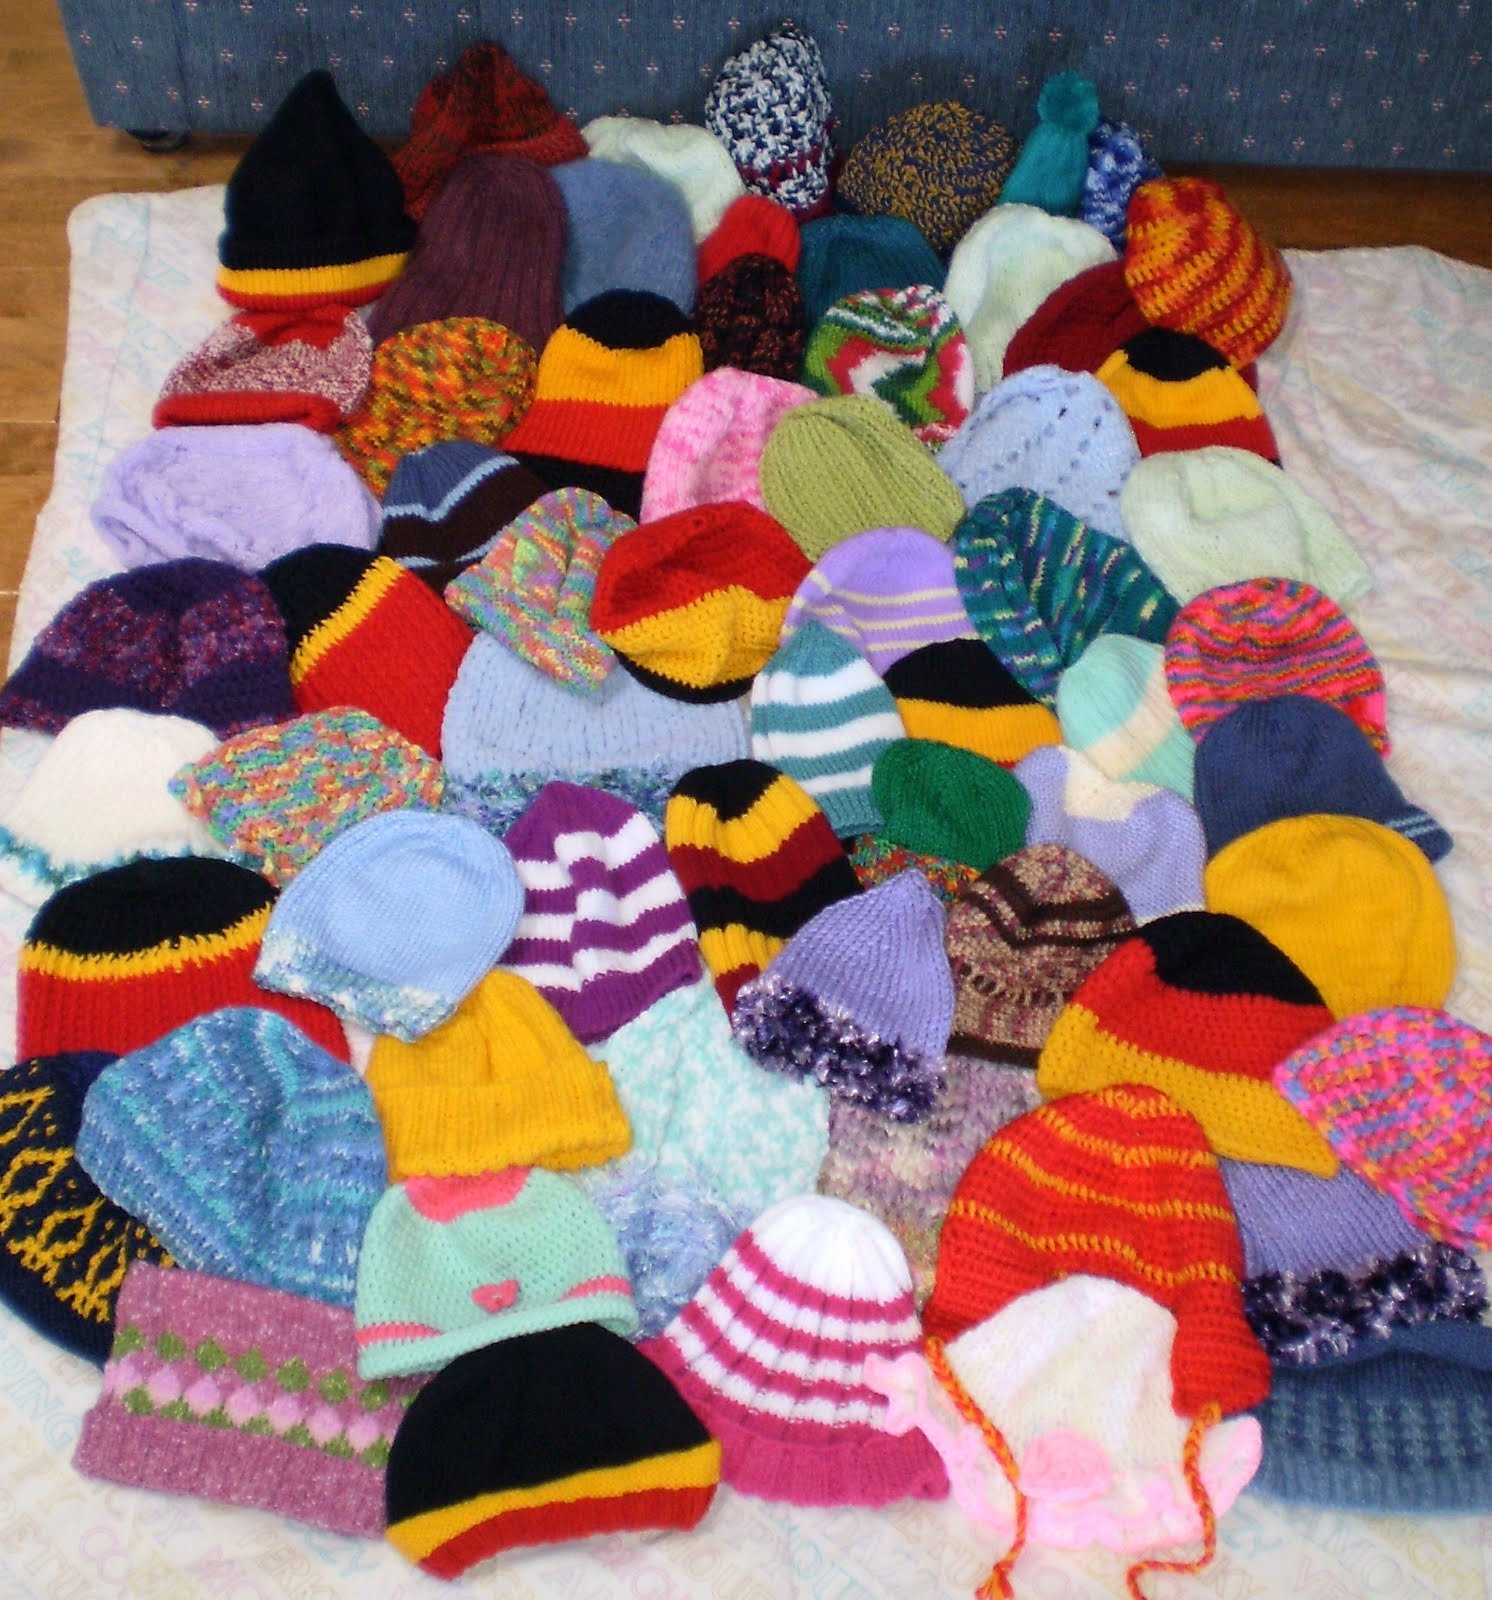 Knitting For Charity South Australia : Never too hot to stitch knitting for charity